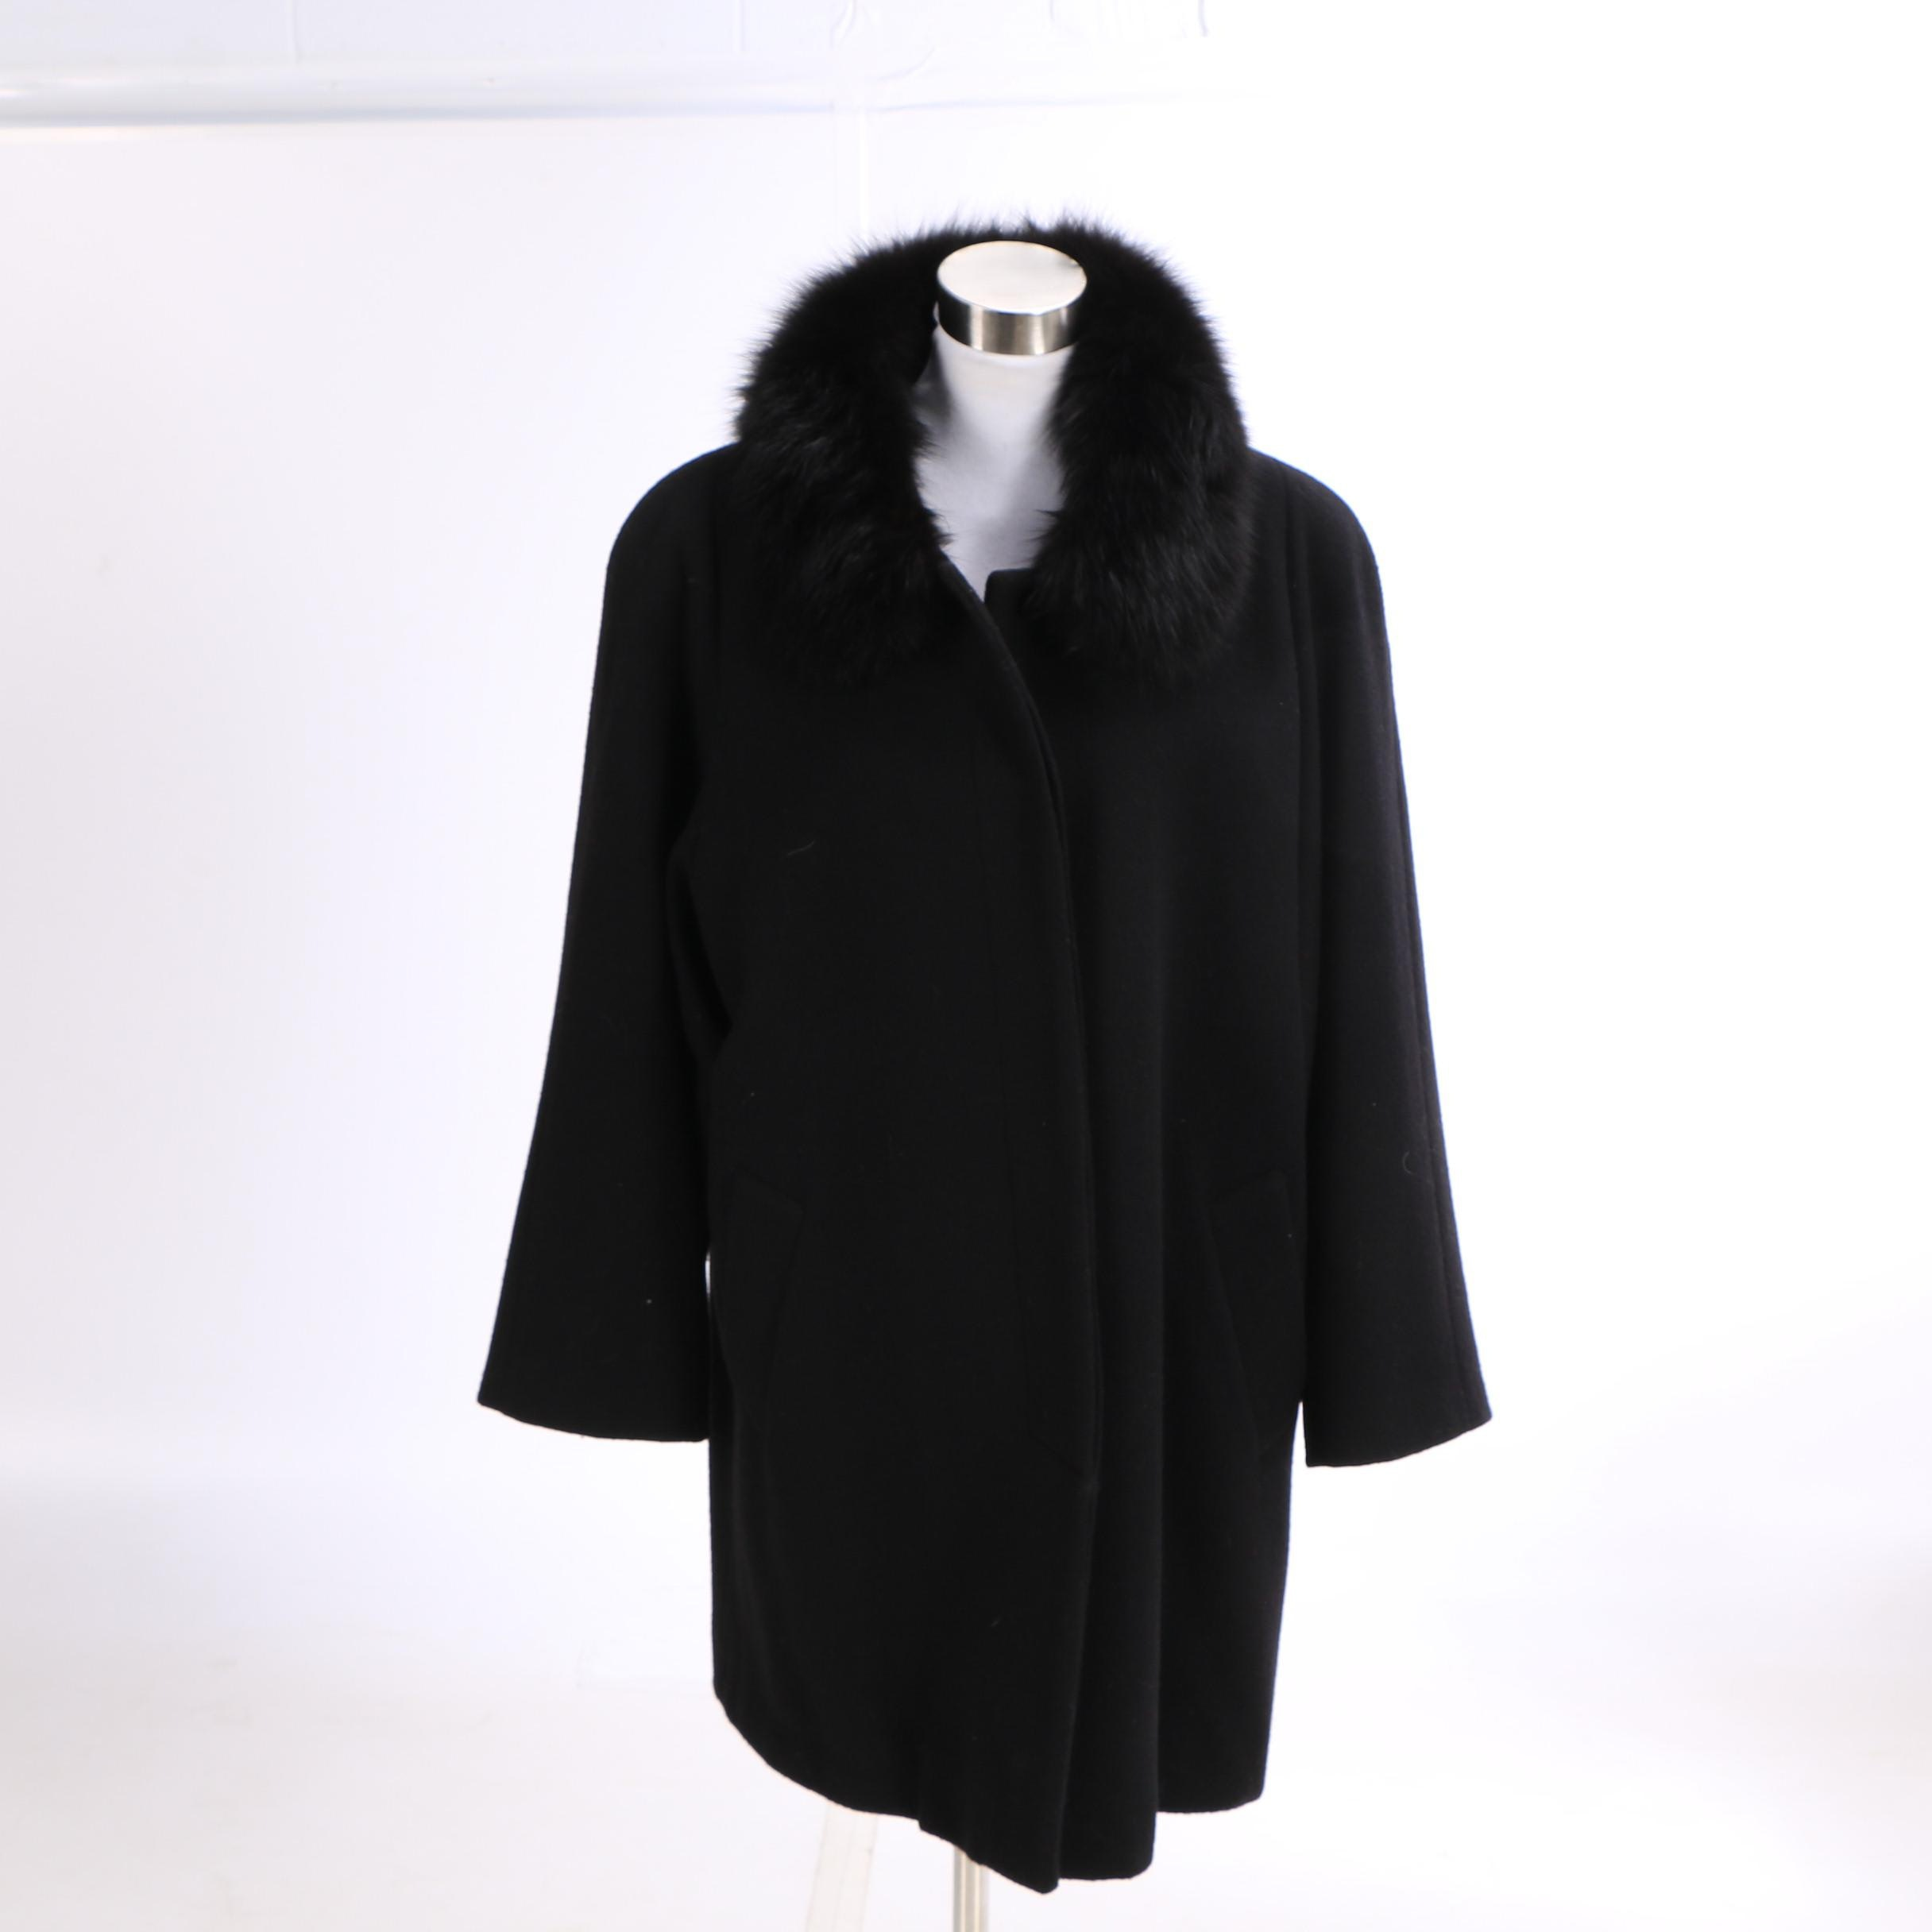 Forecaster of Boston Black Wool Swing Coat with Fox Fur Collar